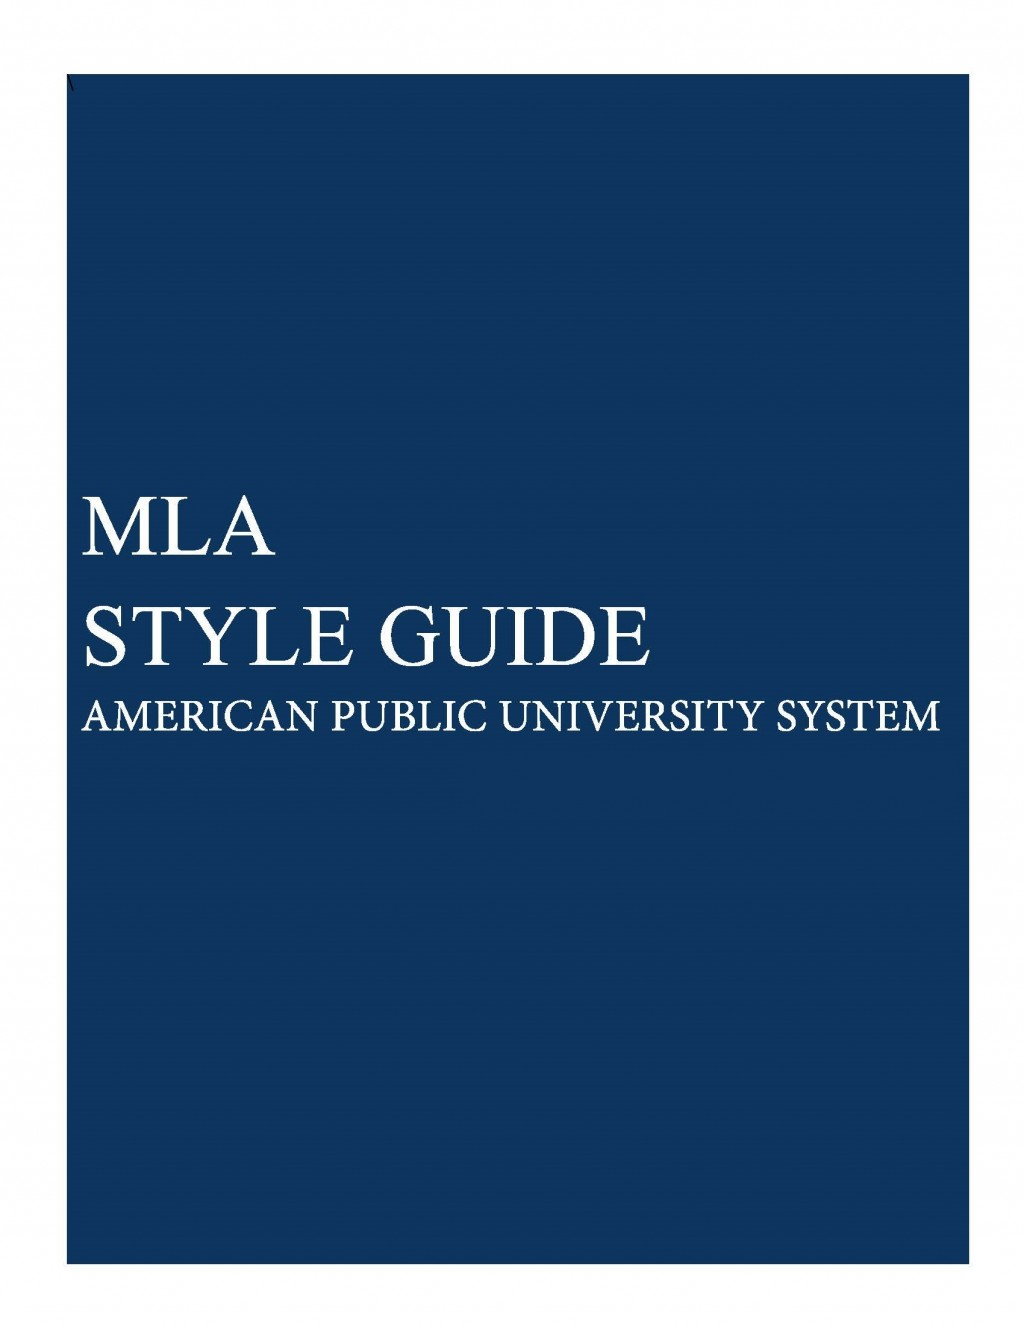 008 Research Paper Mla Handbook For Writers Of Papers 8th Edition Cover Edited Unique Pdf Free Download Large